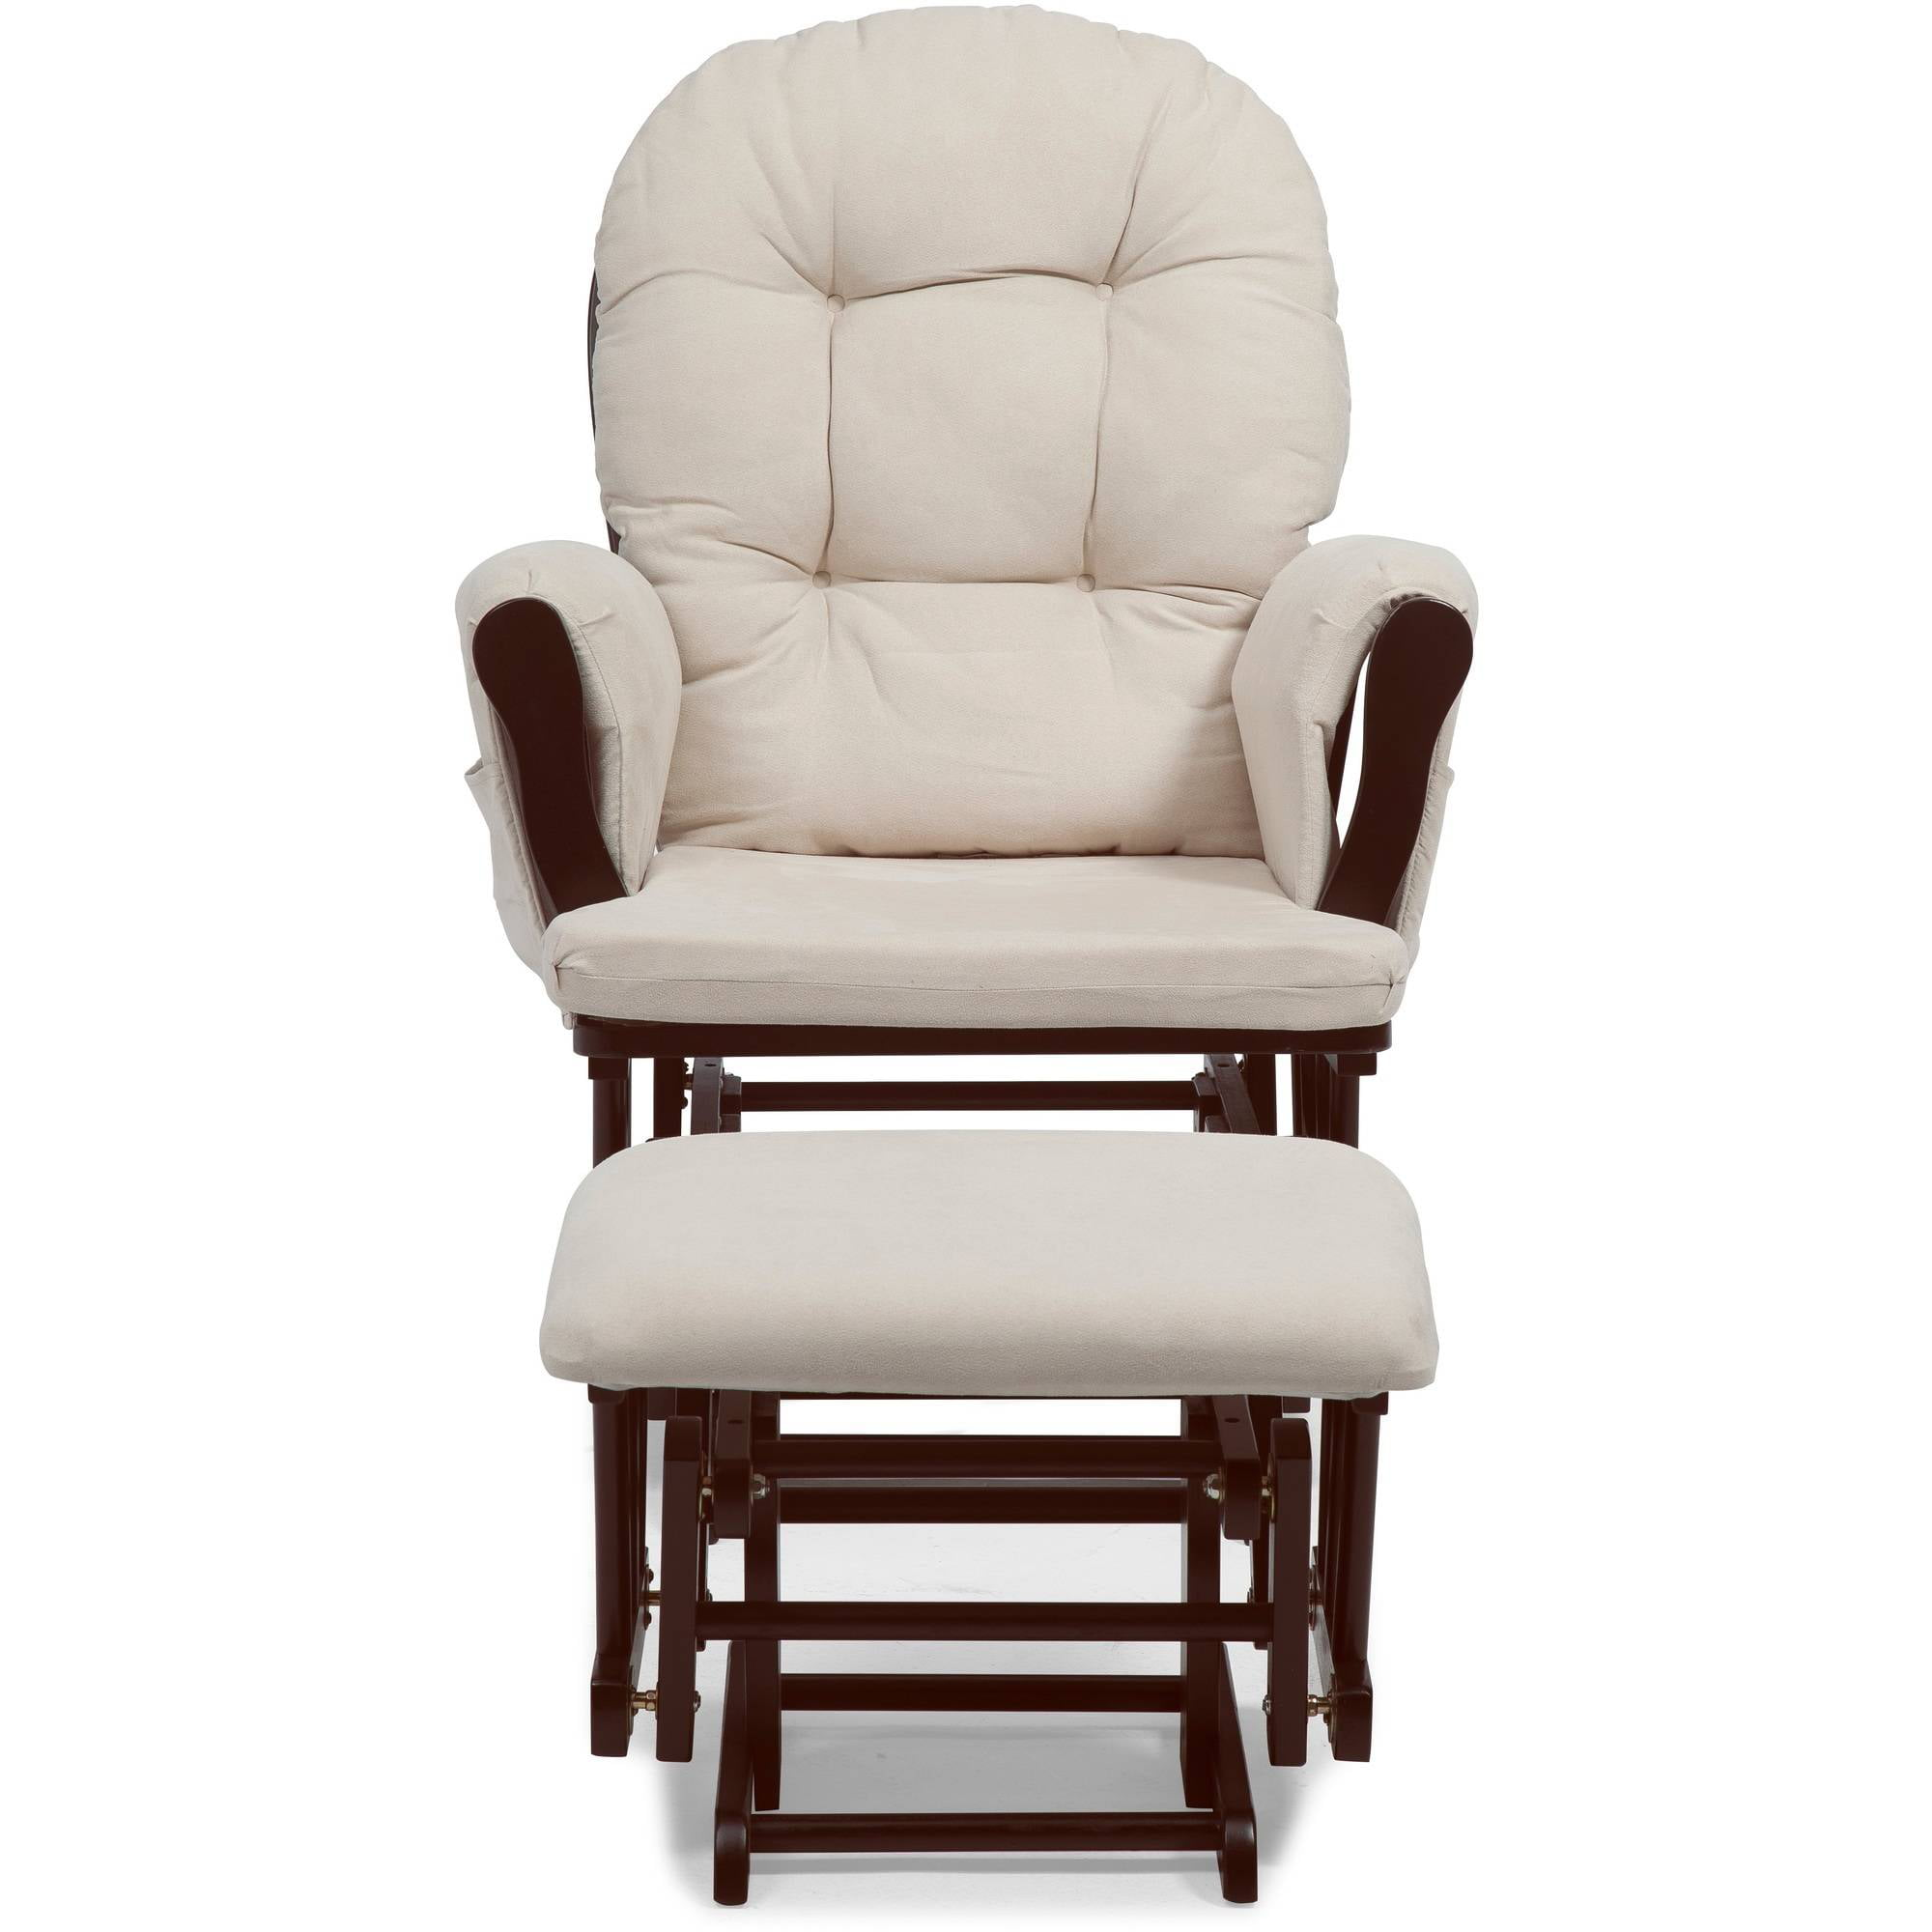 Beau Storkcraft Bowback Glider And Ottoman Espresso With Beige   Walmart.com